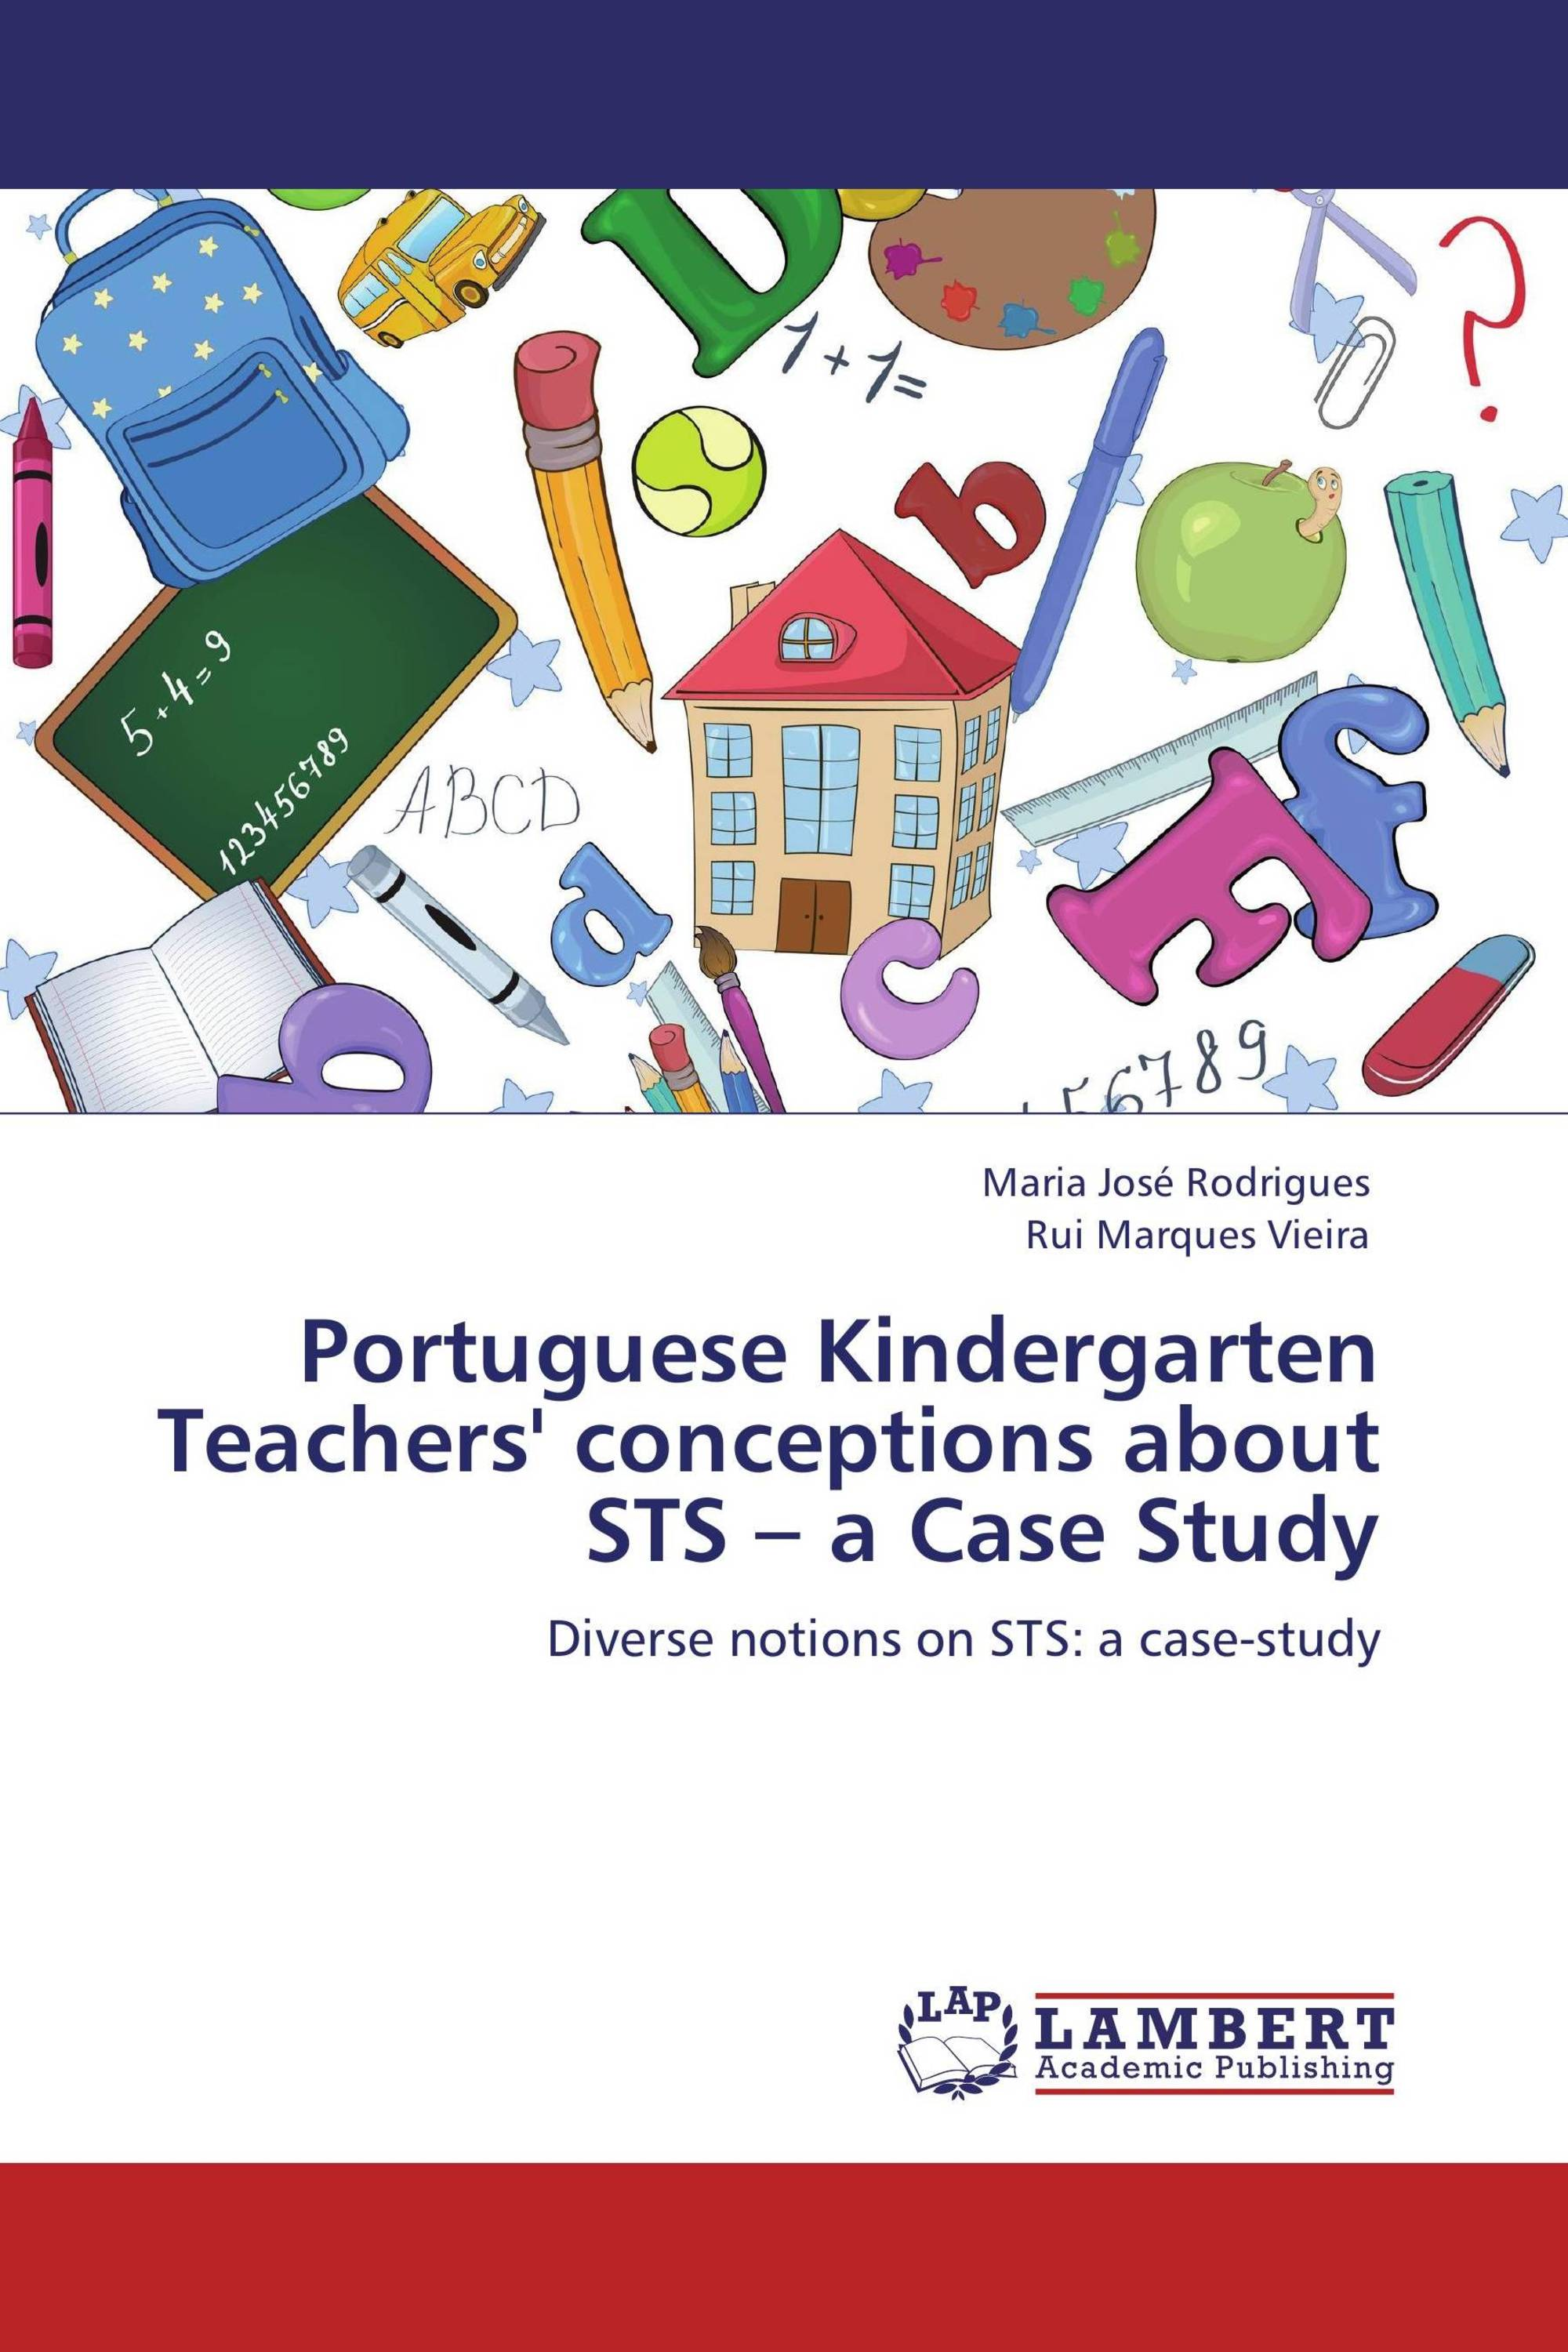 Portuguese Kindergarten Teachers' conceptions about STS – a Case Study